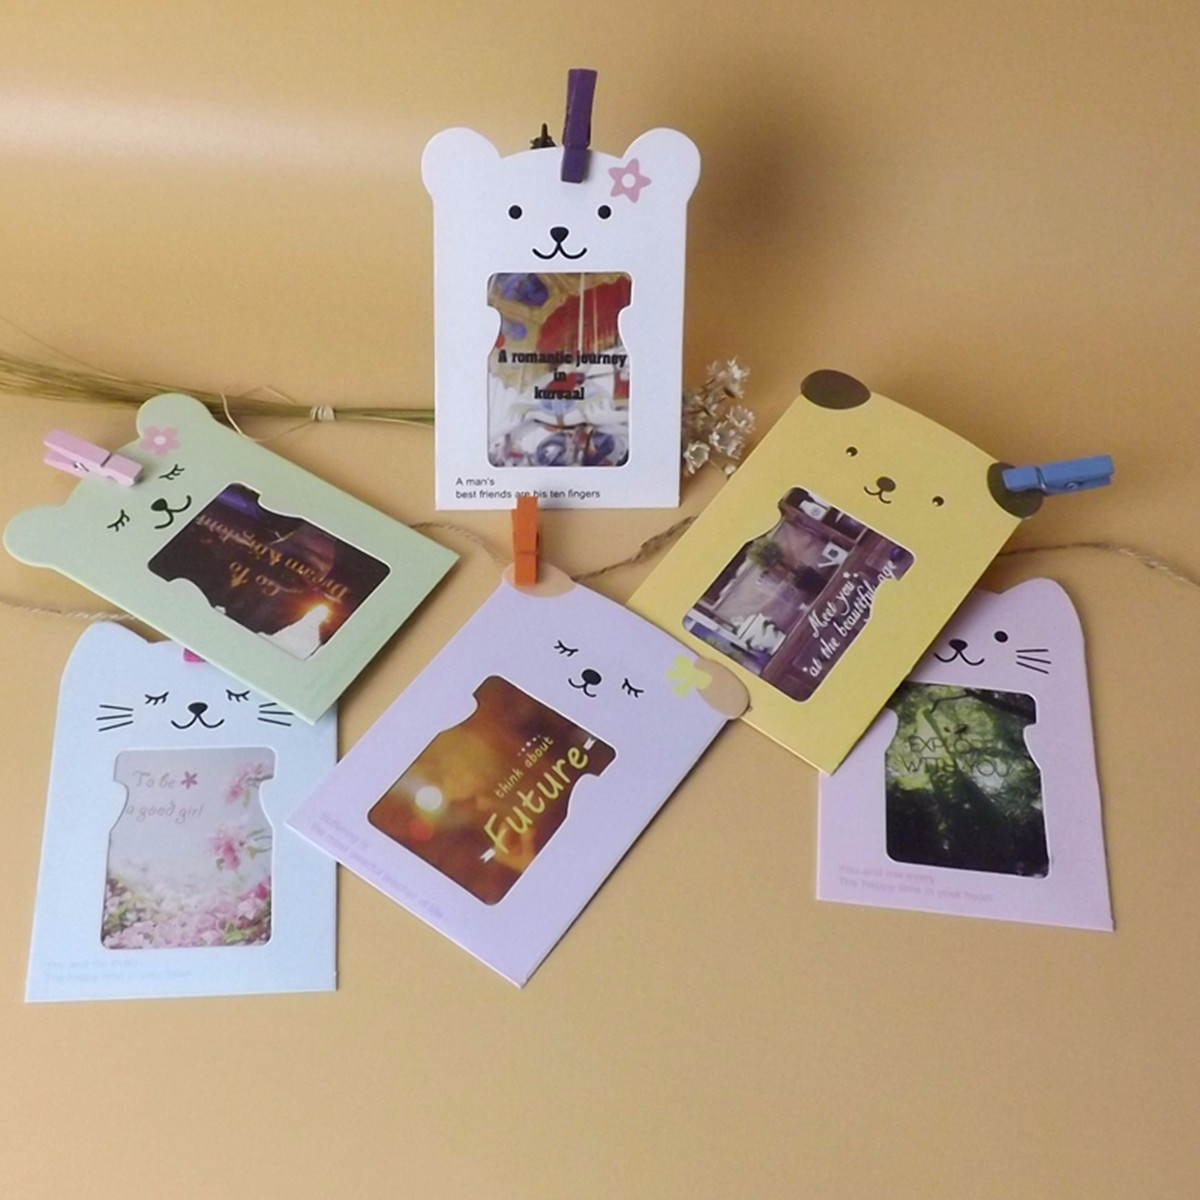 Set 3' Paper Cartoon Hanging Album With Clips  Rope Diy Wall Hanging Picture Photo Frame Display Home Decor From Reliable